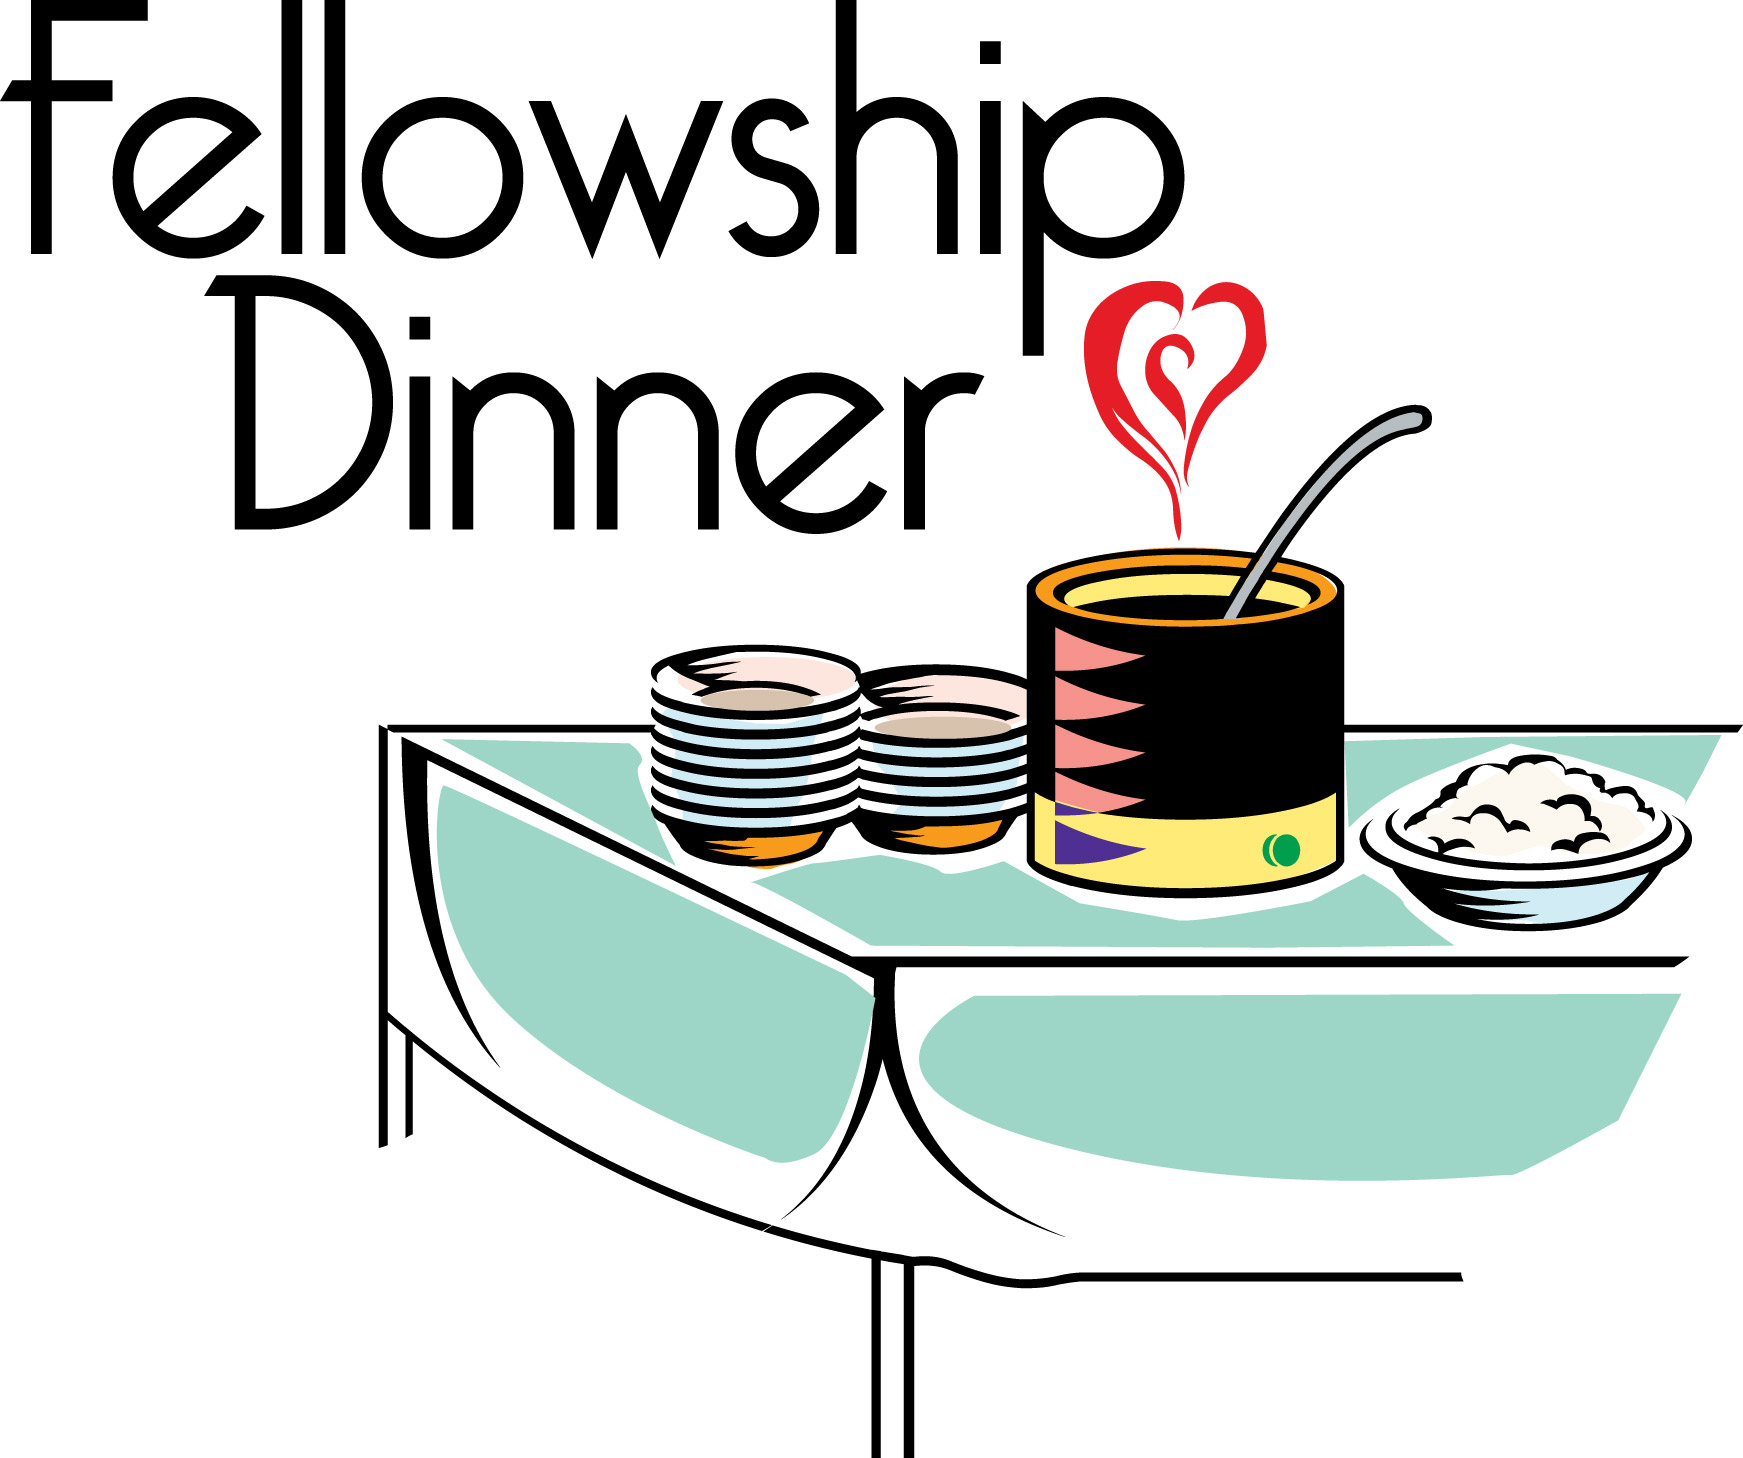 Church Fellowship Meal Clip Art image in Vector cliparts category at.